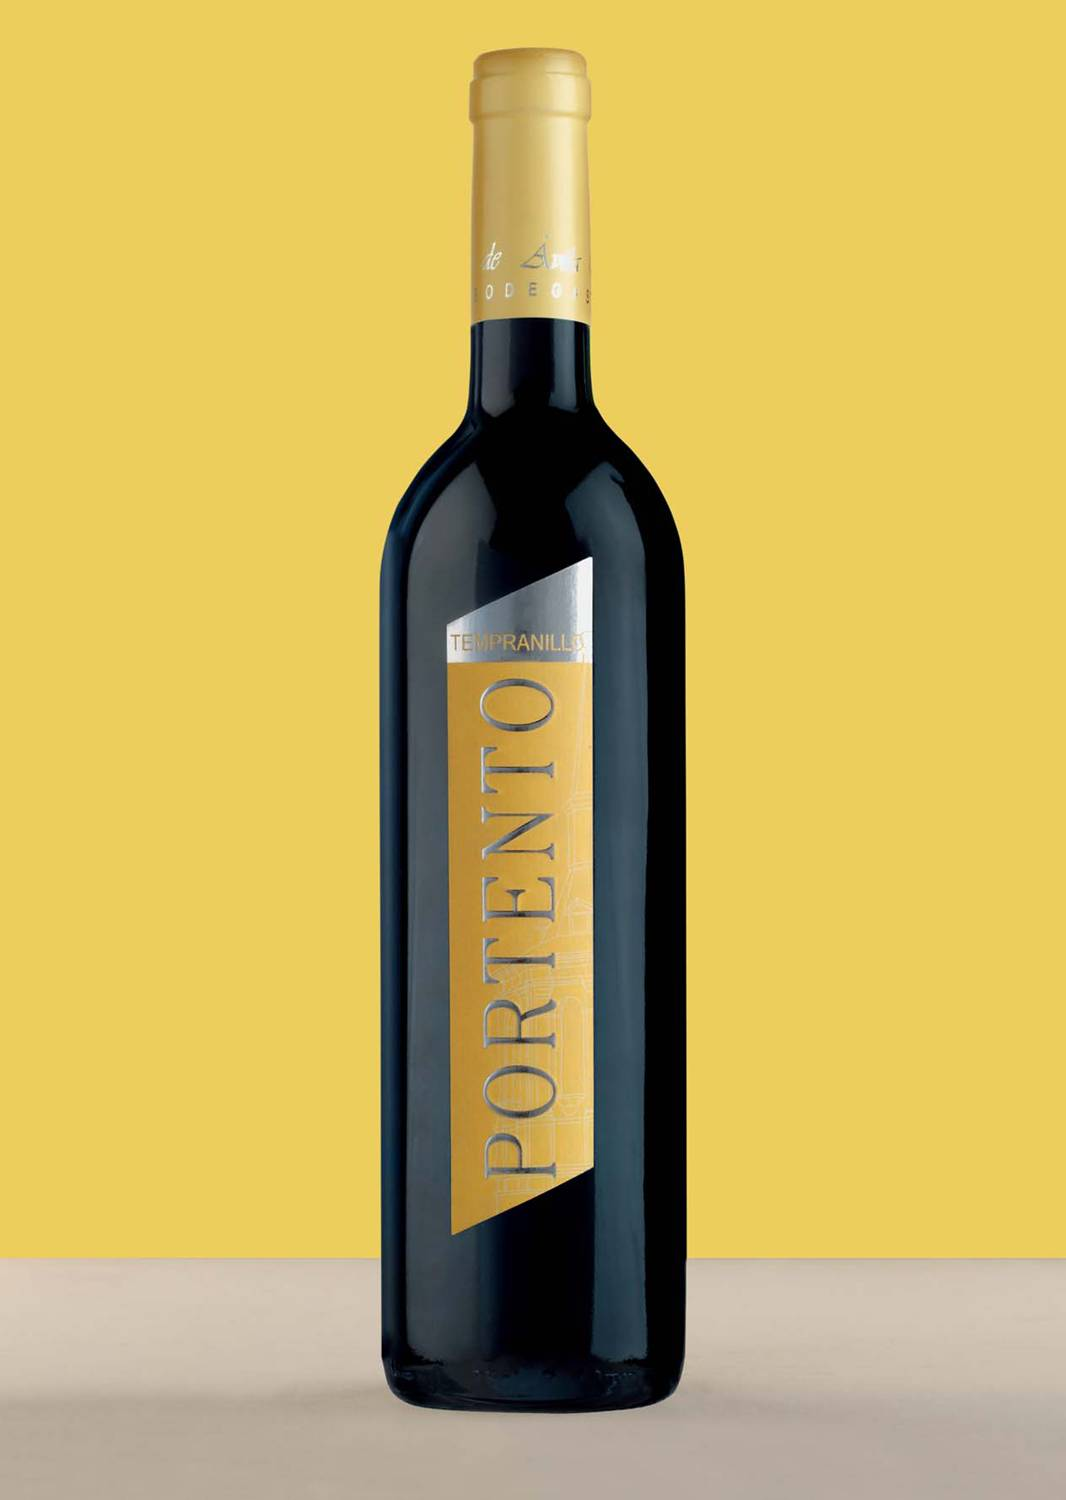 Portento (Tempranillo) red wine